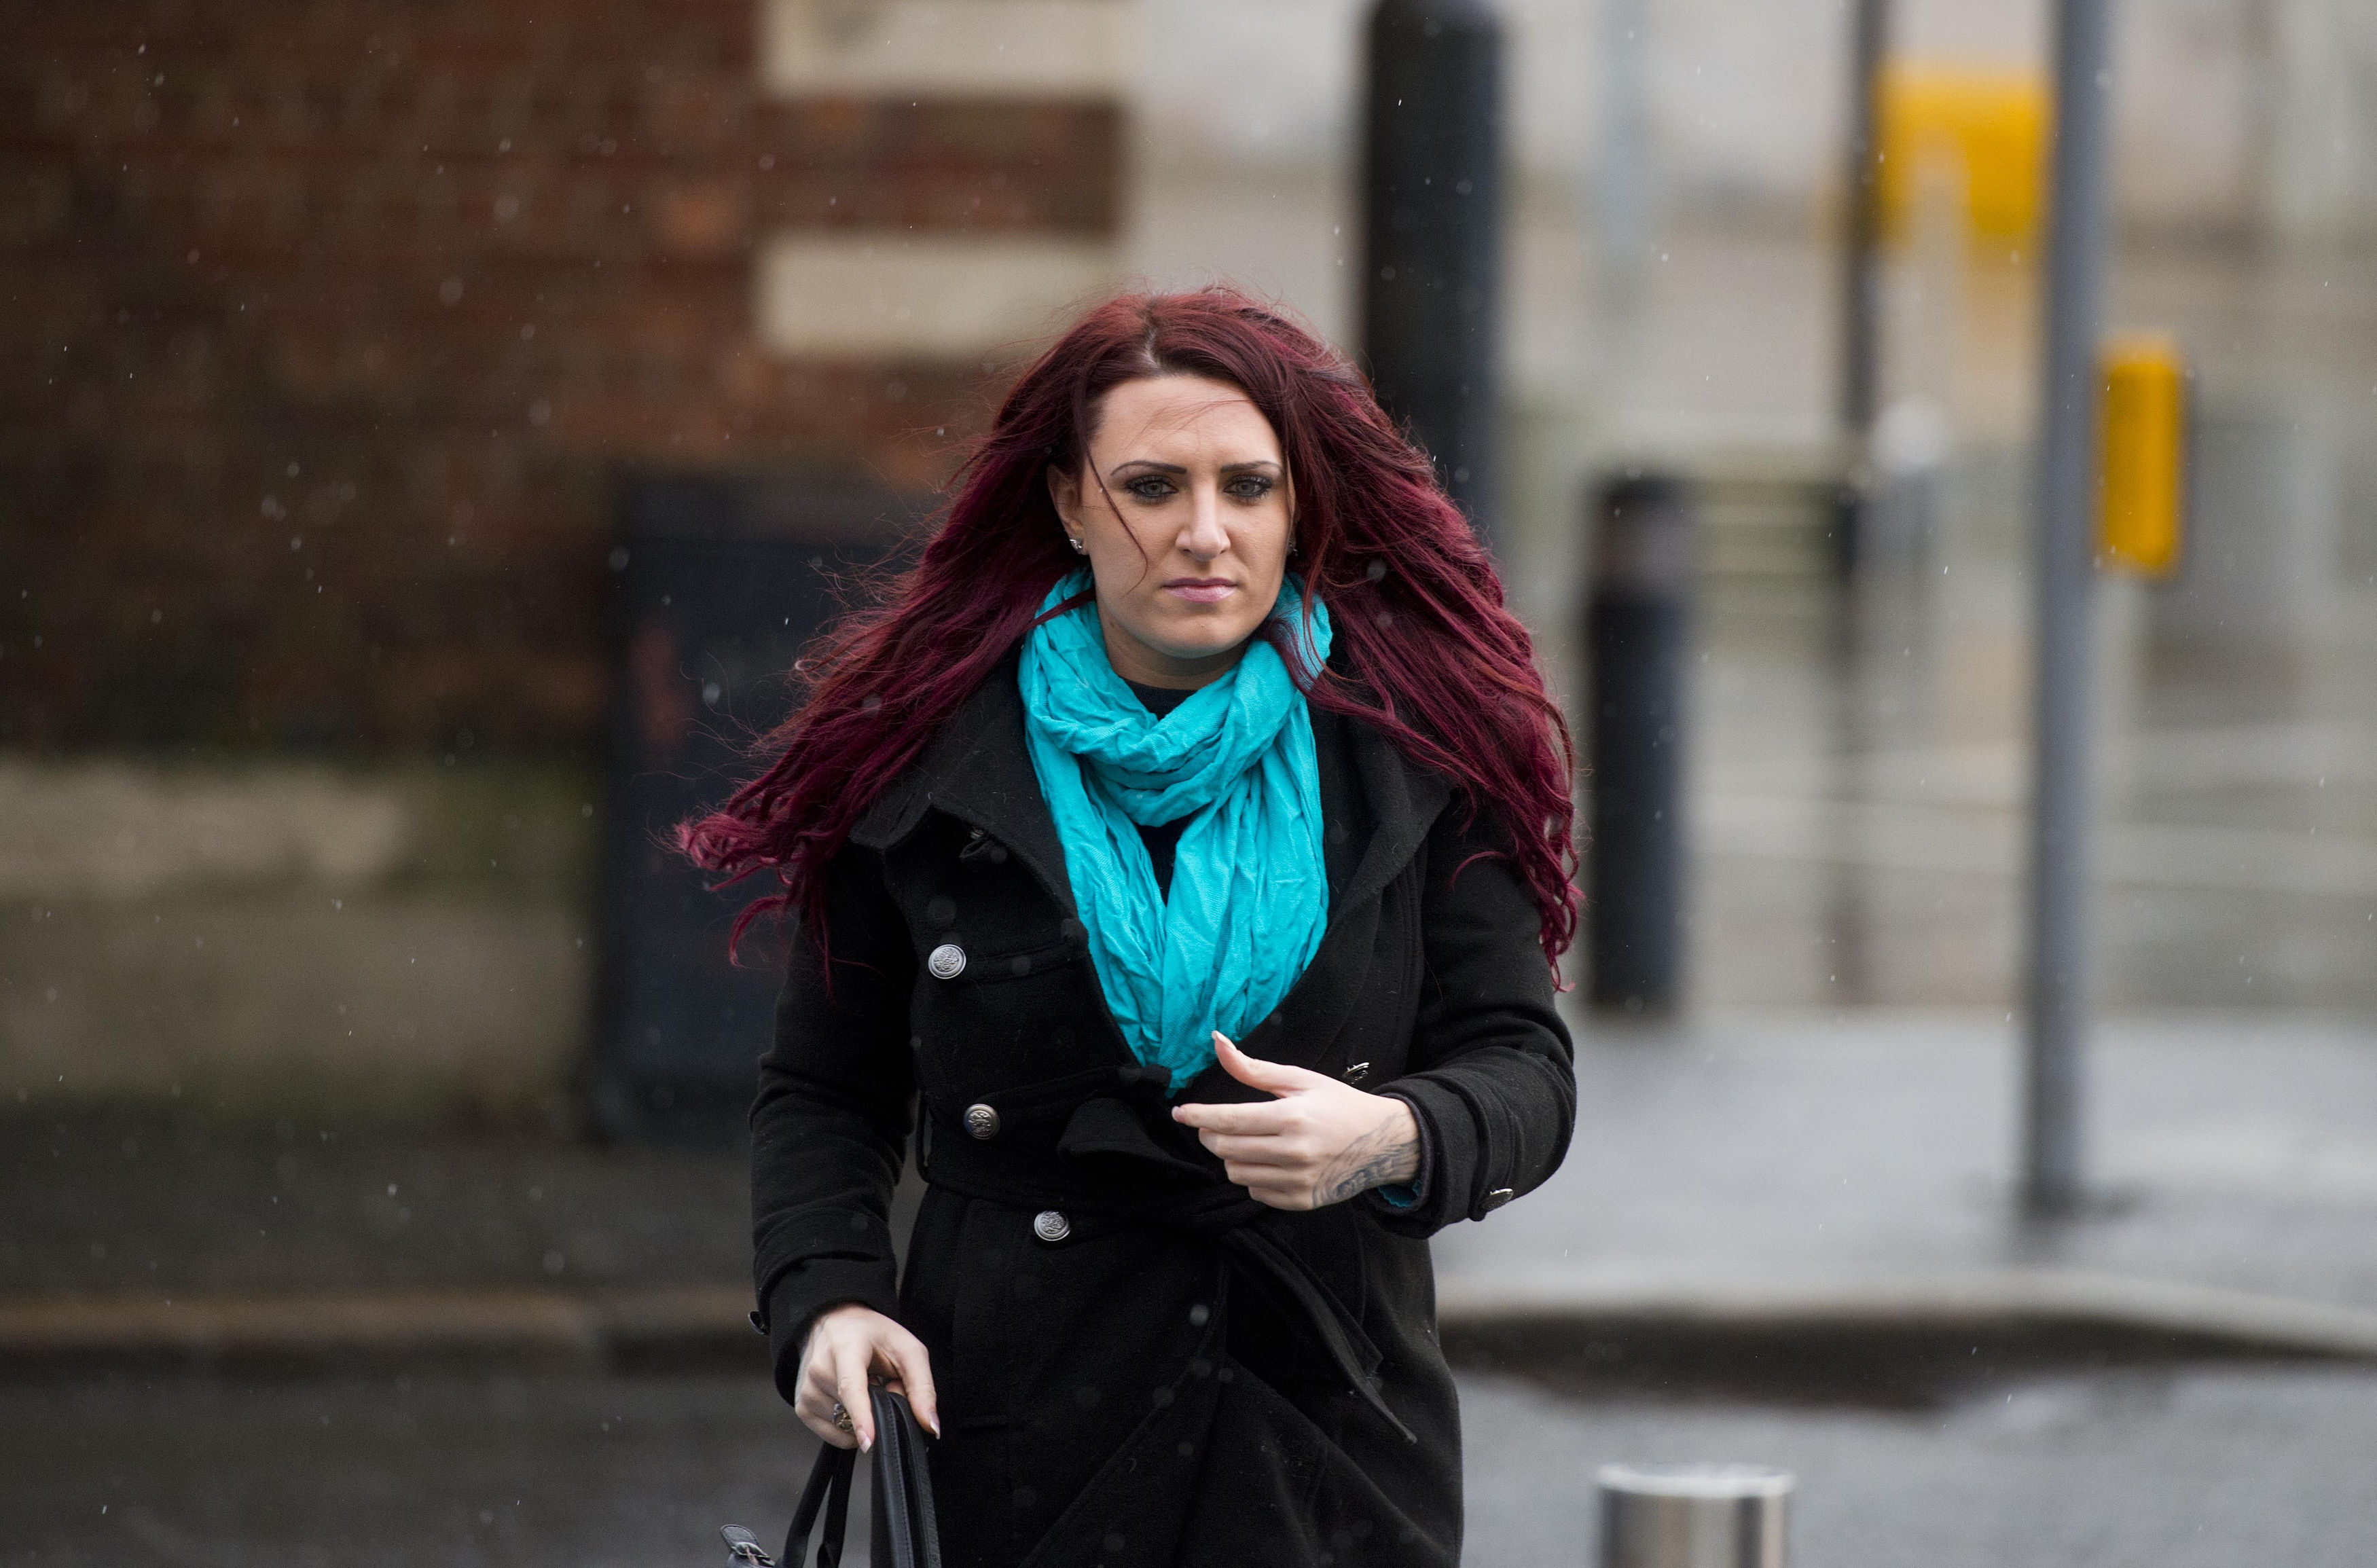 Twitter bans Britain First as it cracks down on online hate